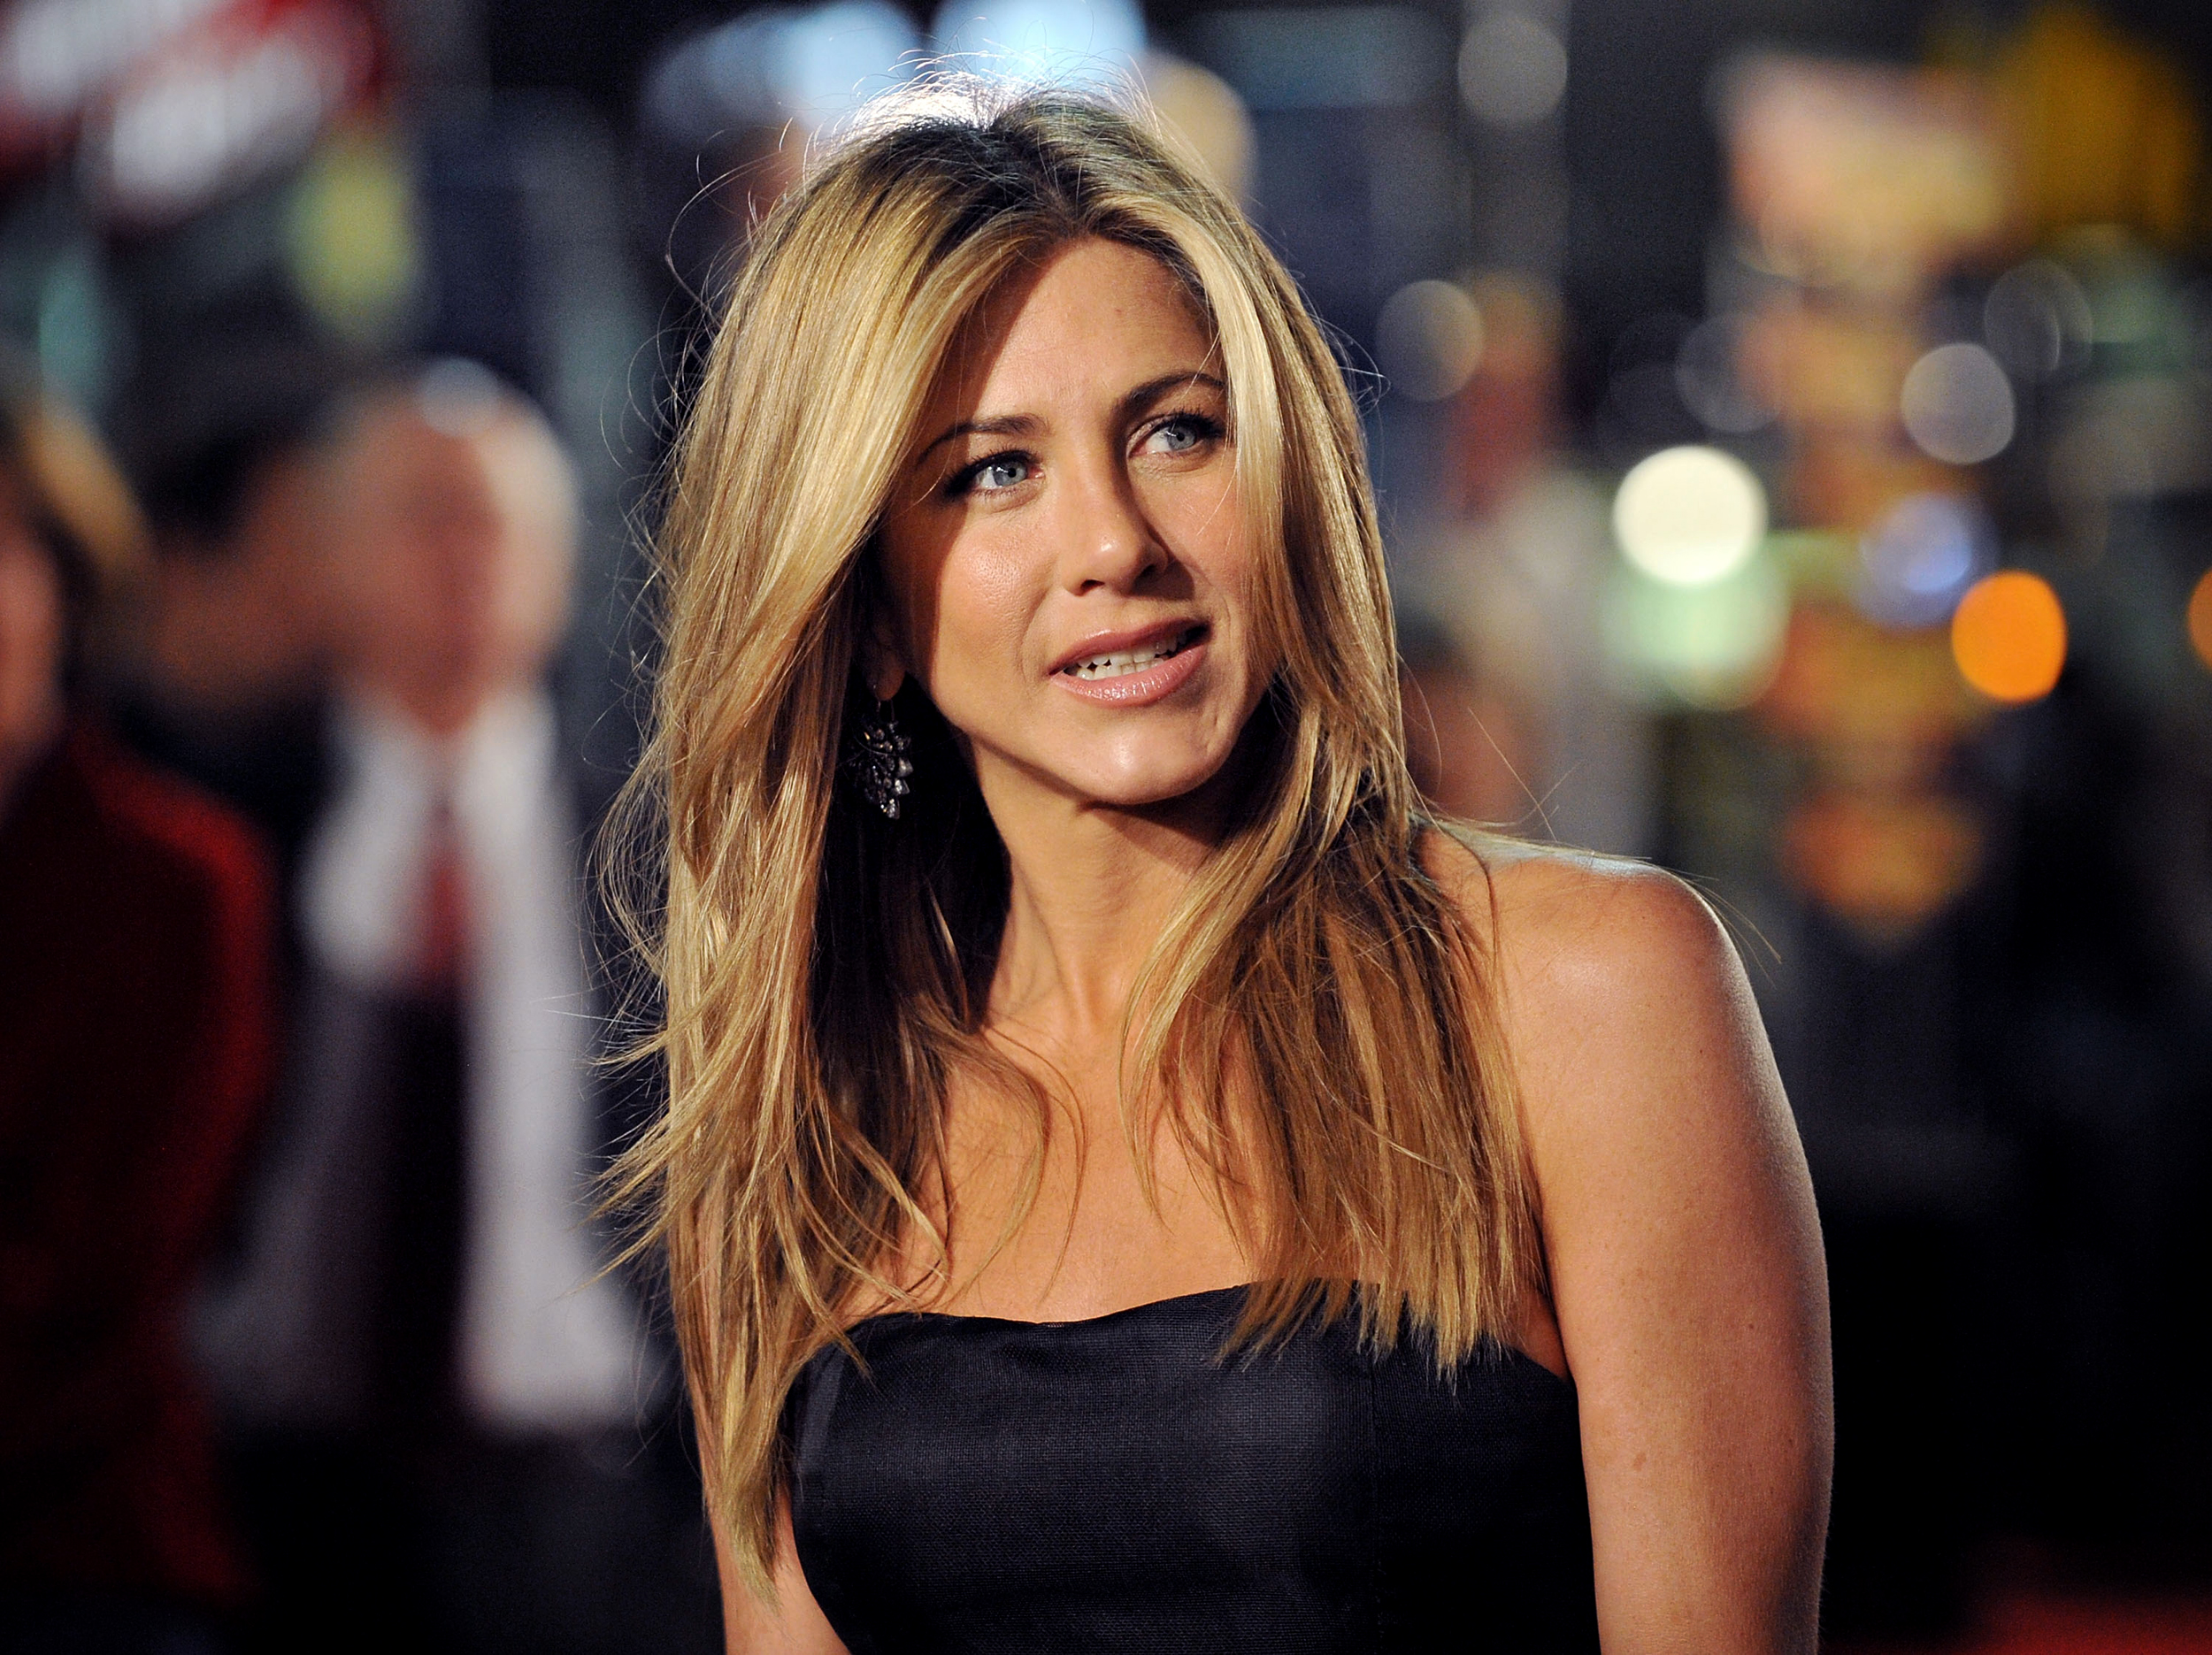 Hot or Not - Page 21 200212-jennifer-aniston-cs-900a_2fc059d8fabde605846a7ee11d371854